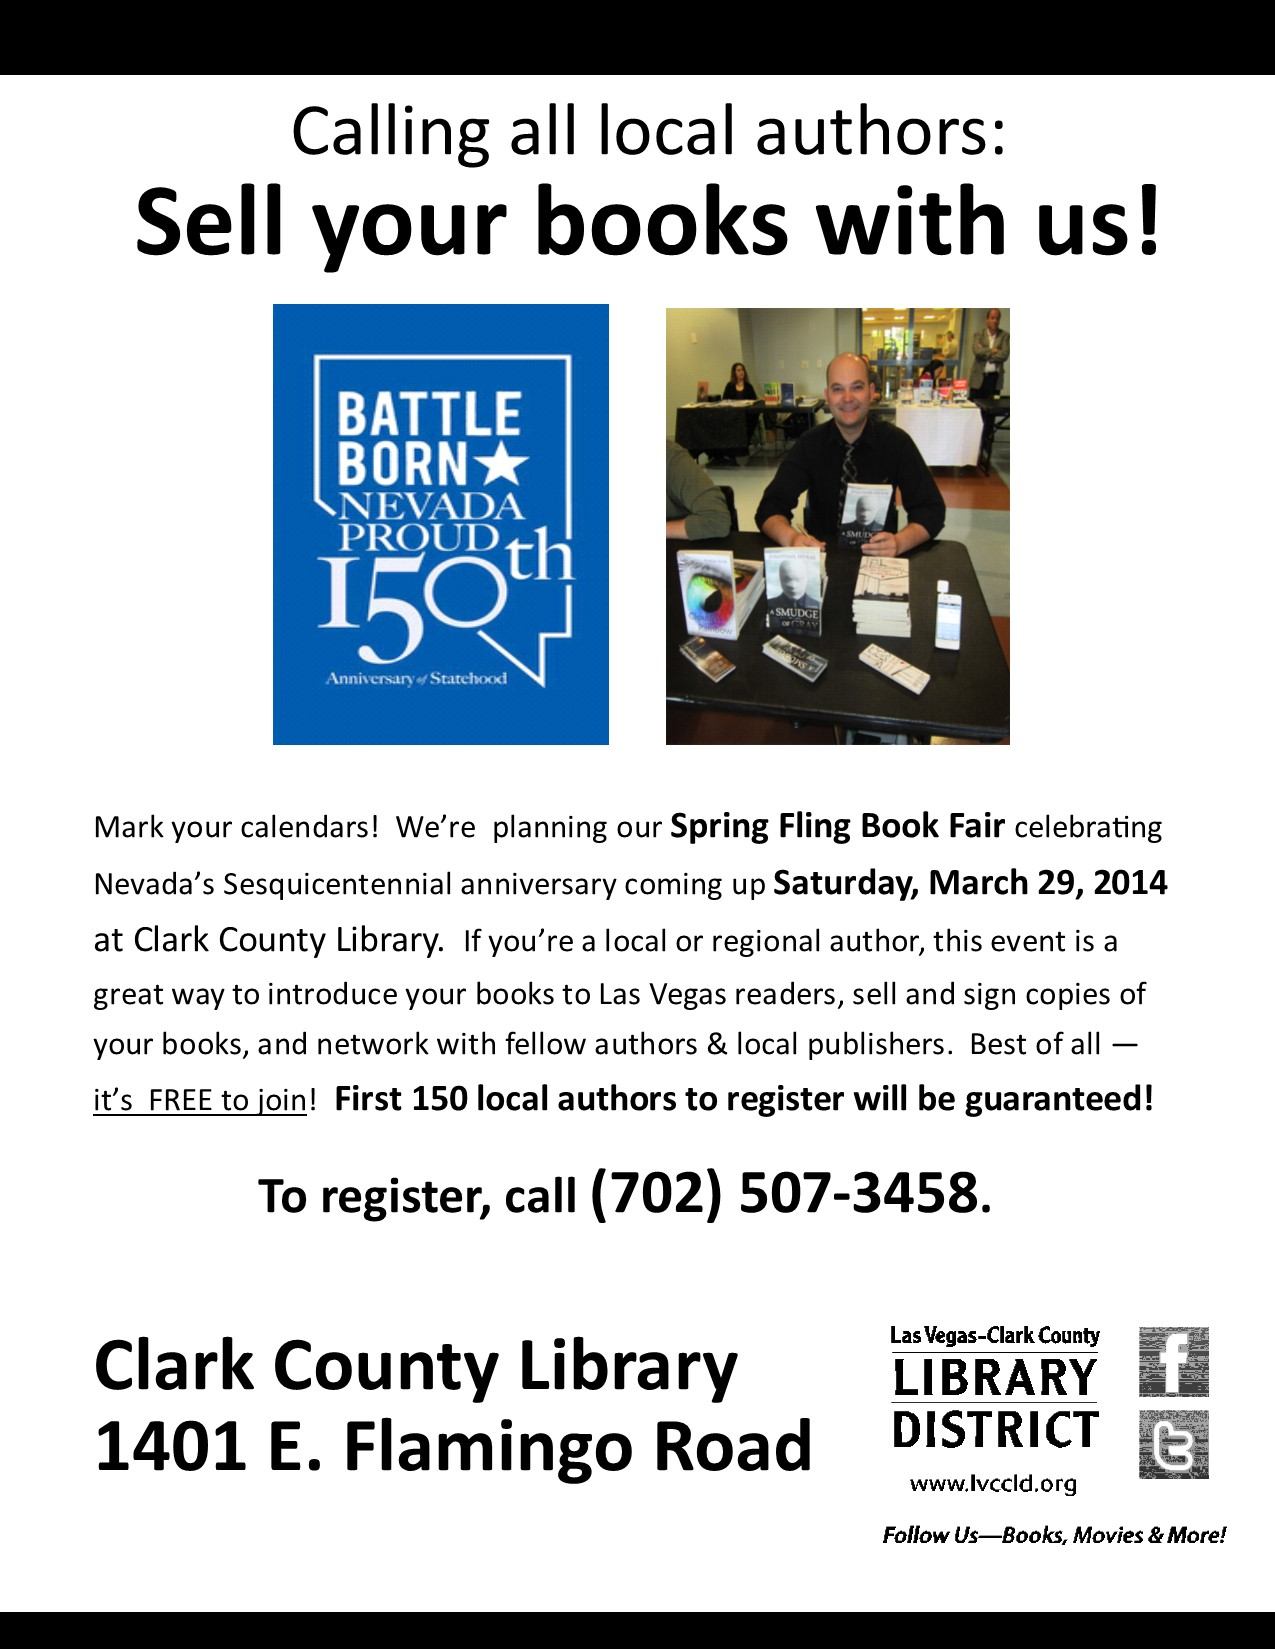 5th Annual Spring Fling Book Fair